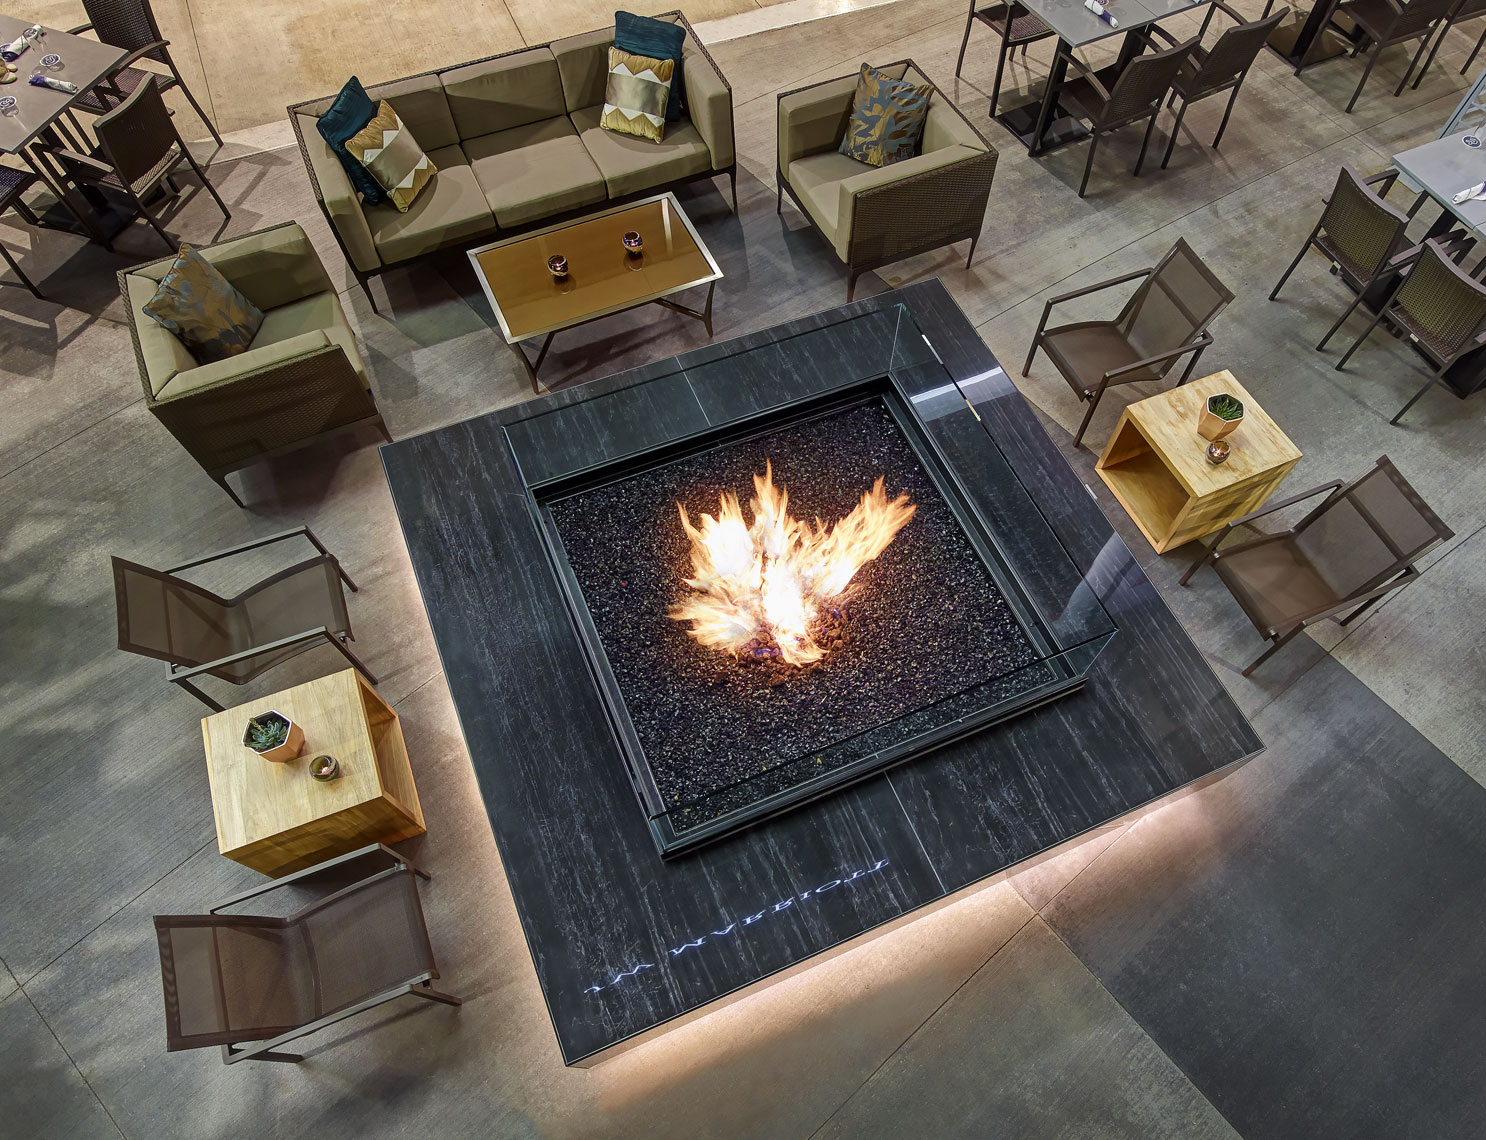 J-W Marriott/Lounge area/fire pit/Location photography